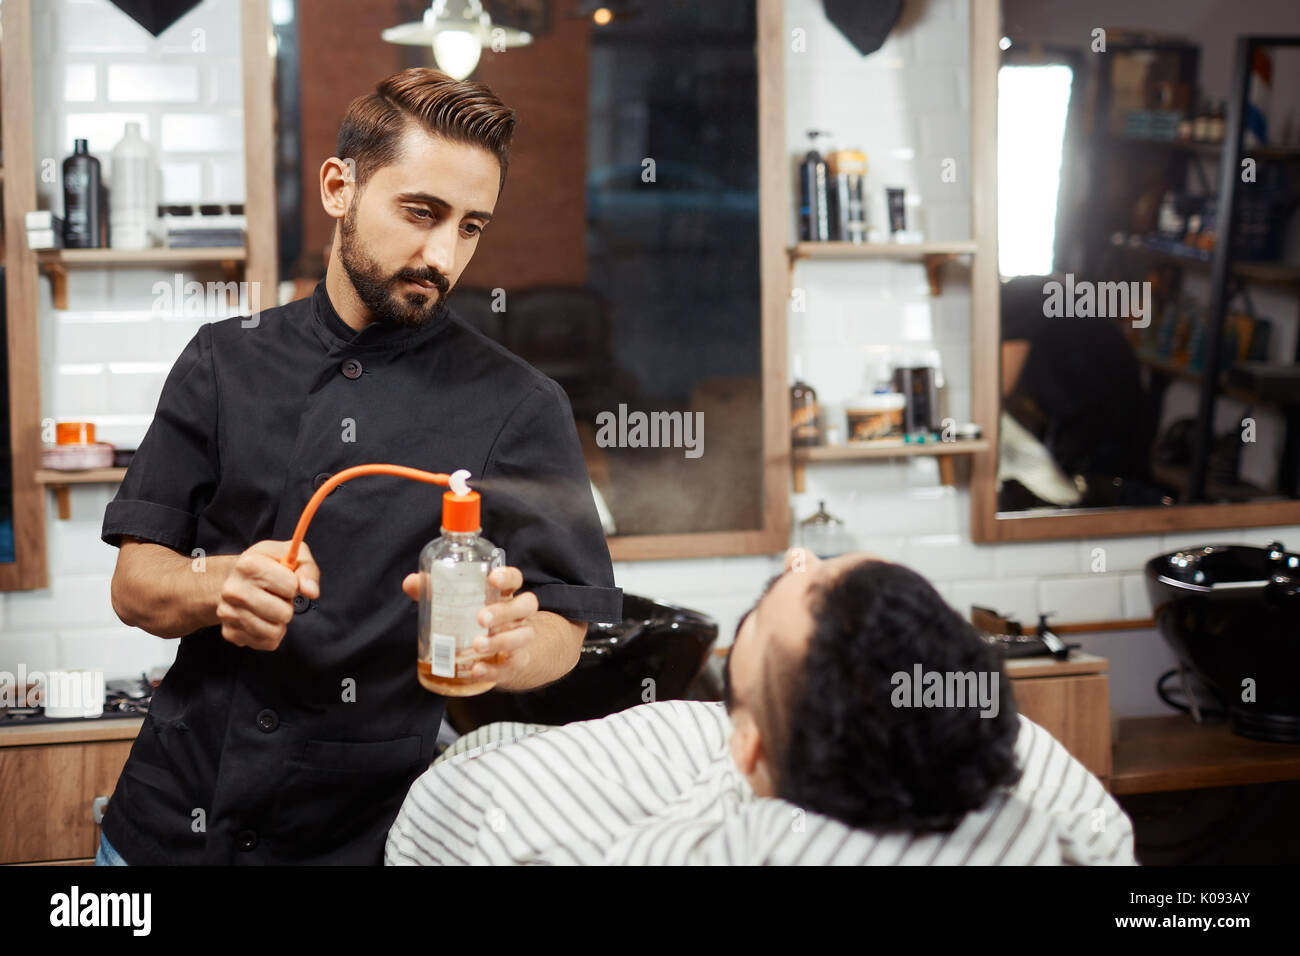 Barber spreading perfume on client - Stock Image